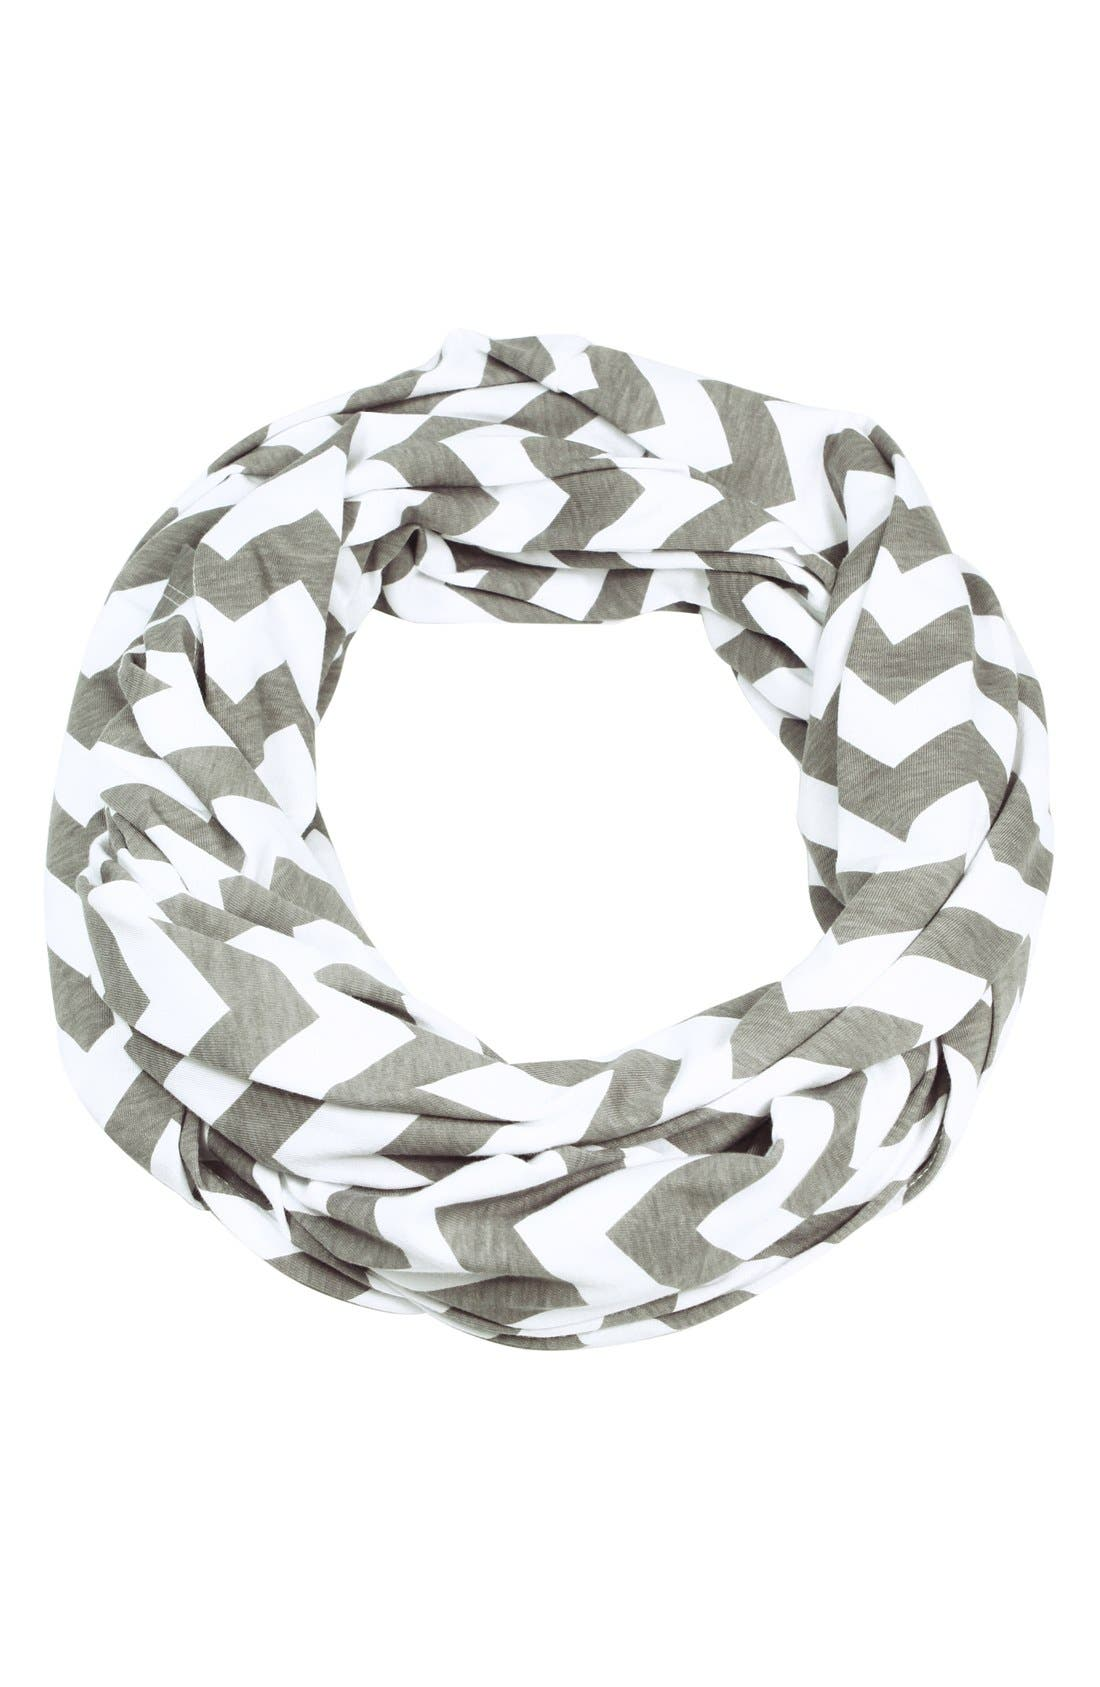 Infinity Nursing Scarf,                             Main thumbnail 1, color,                             GREY/ WHITE